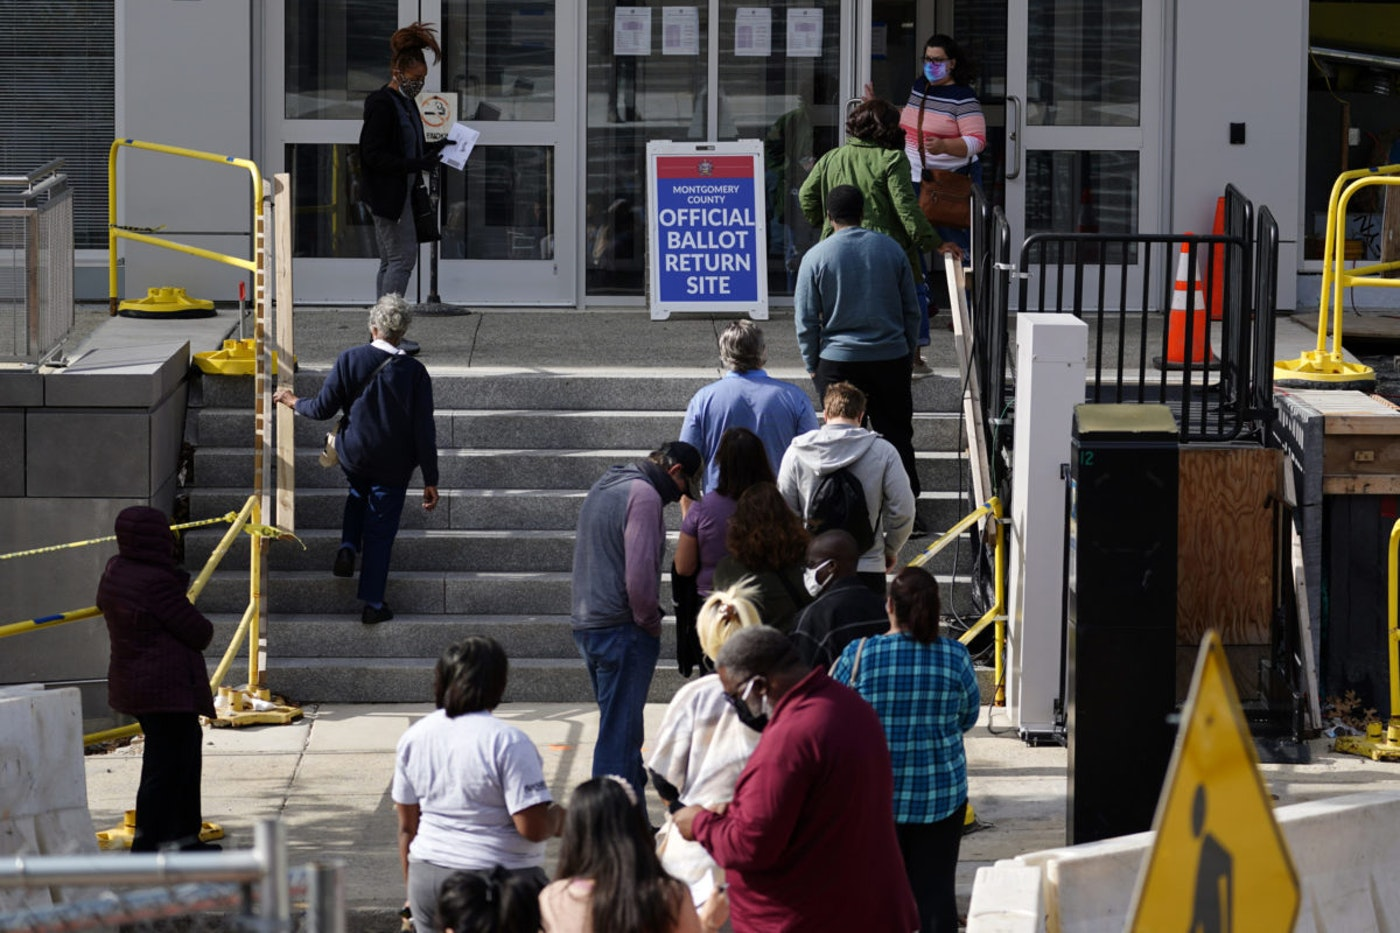 Residents line up outside the Montgomery County, Pa., Voter Services office, Monday, Oct. 19, 2020, in Norristown, Pa. Monday was the last day in Pennsylvania to register to vote in the Nov. 3 election. (AP Photo/Matt Slocum)